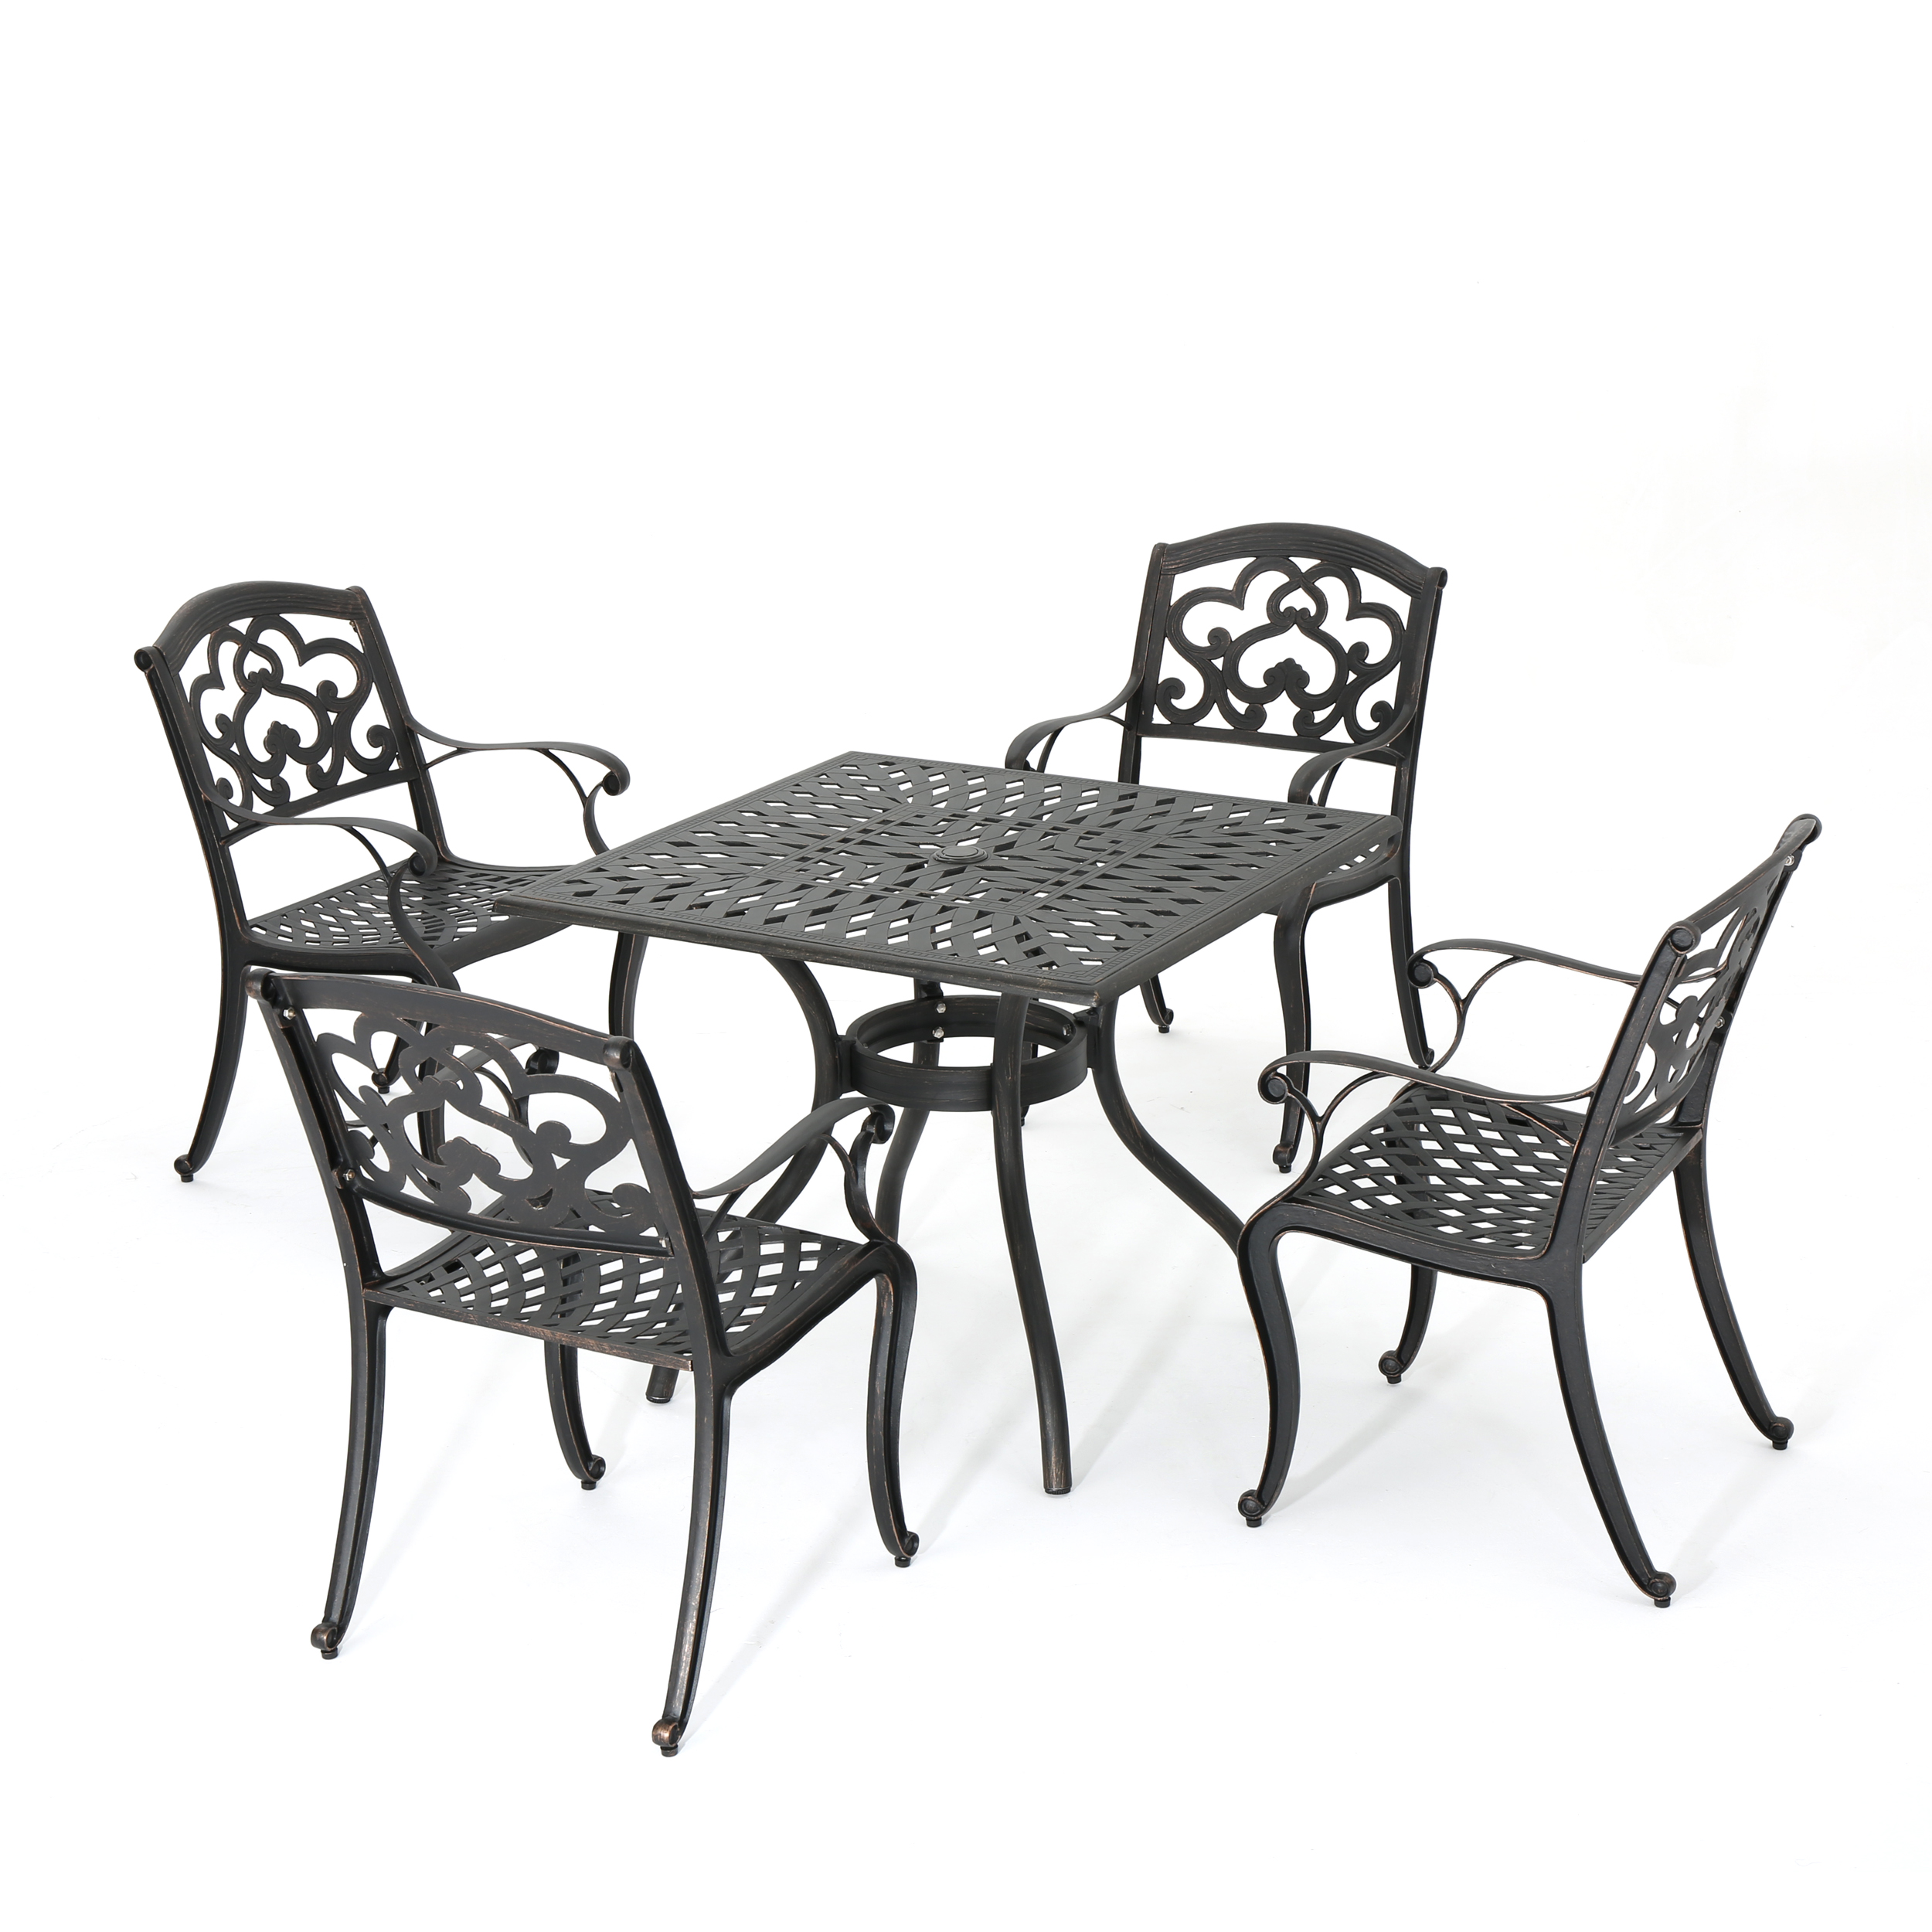 Augusta Outdoor 5-Piece Cast Aluminum Dining Set, Shiny Copper Finish